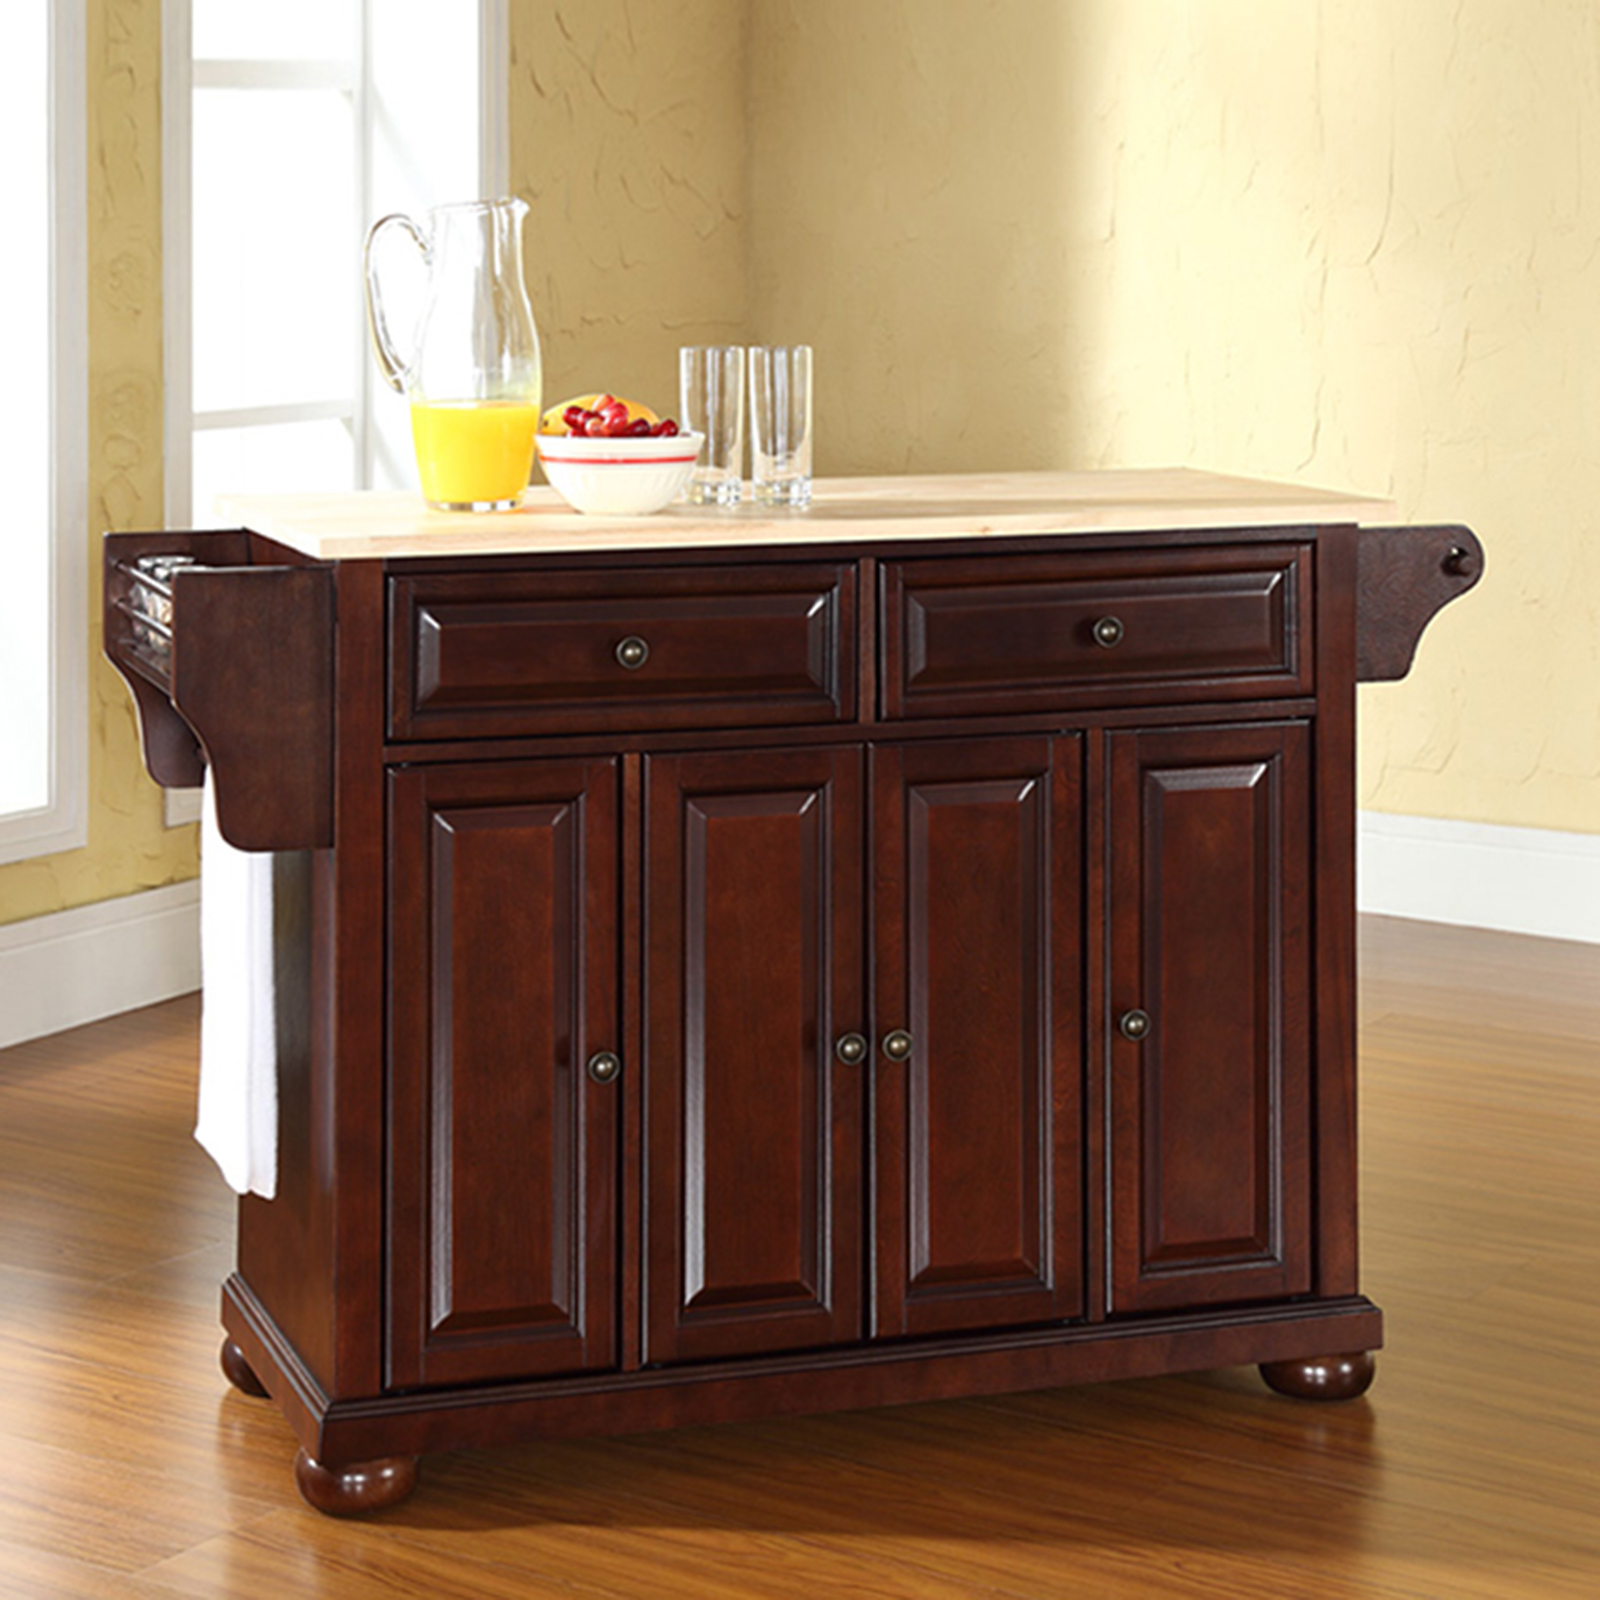 crosley kitchen island waterstone faucets furniture alexandria hardwood vintage mahogany brown